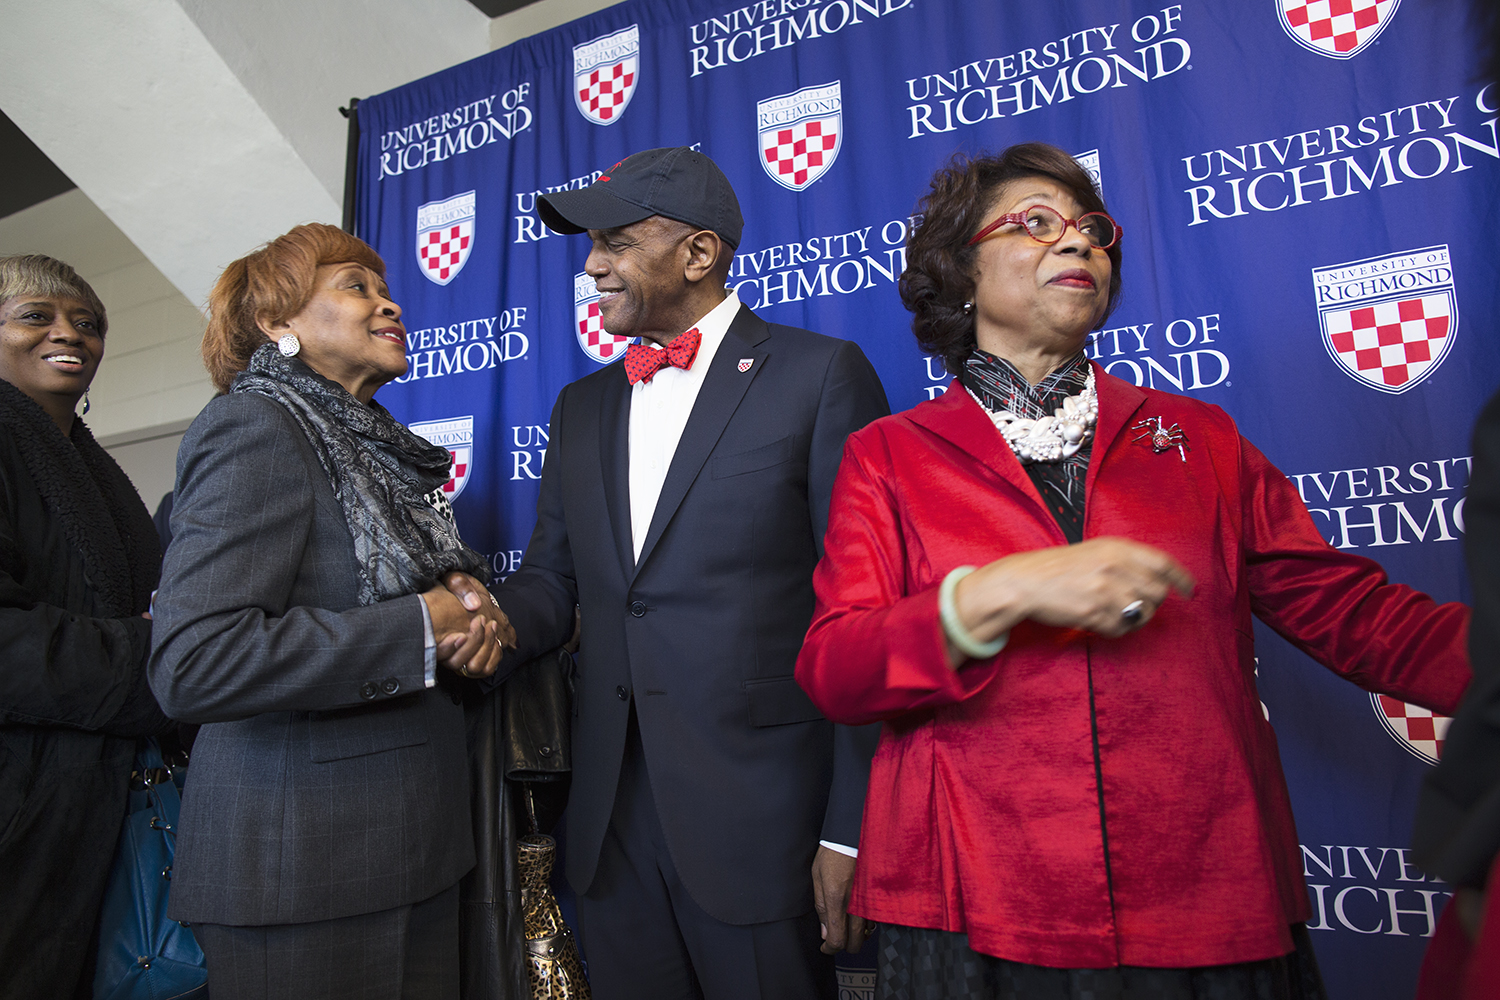 Web_20150227_Ronald_Crutcher_University_of_Richmond_VA_5D_0122.jpg